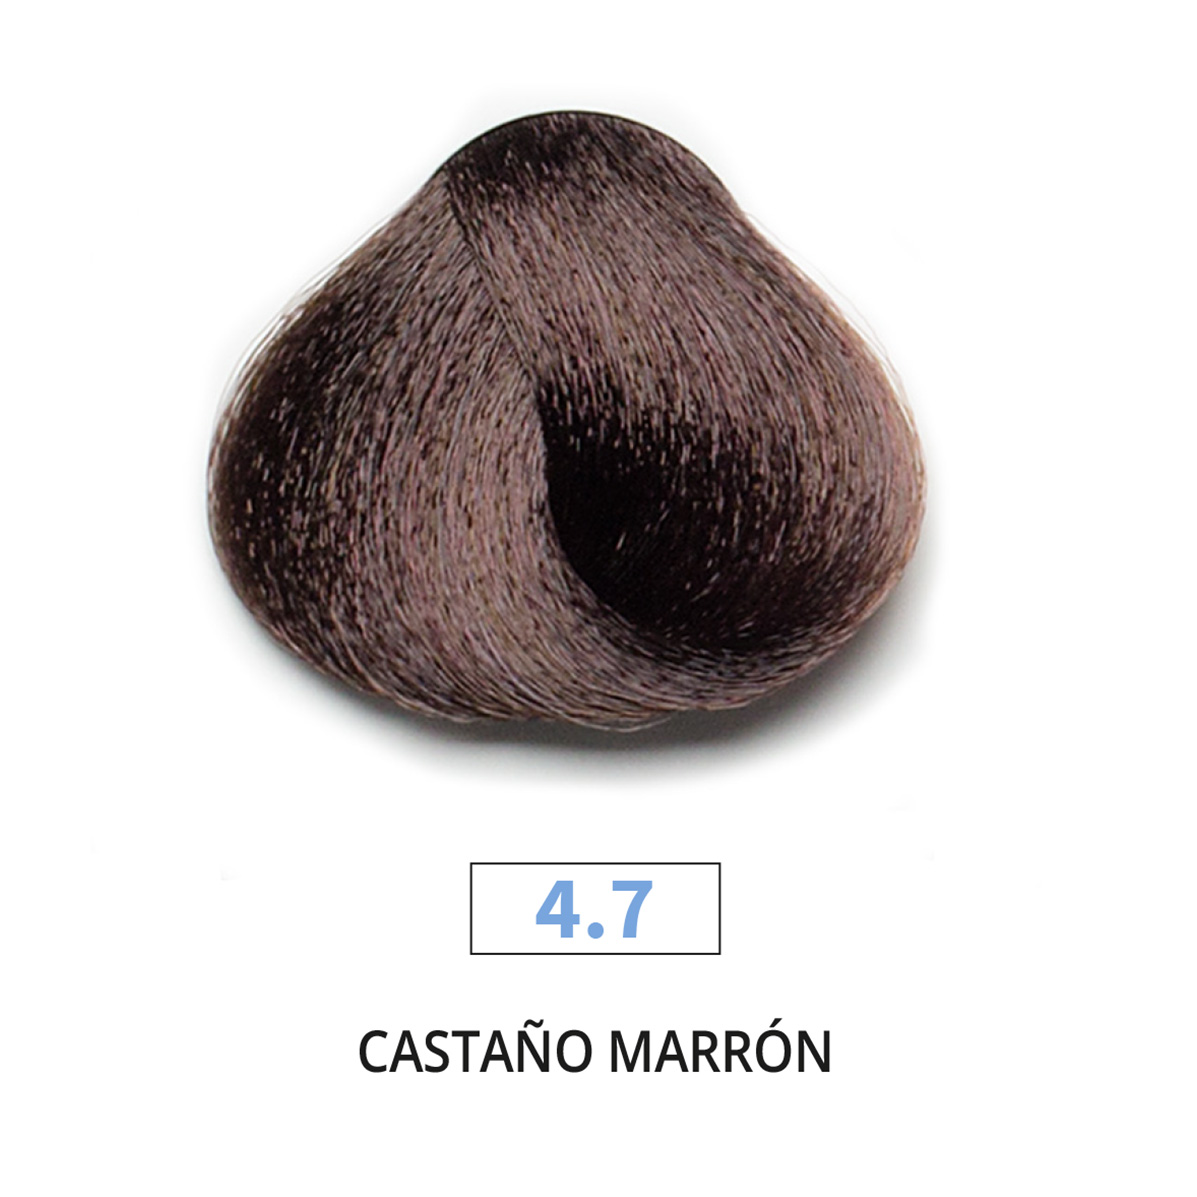 4.7 Blussy Hair Sin Amoniaco - Yanguas Professional